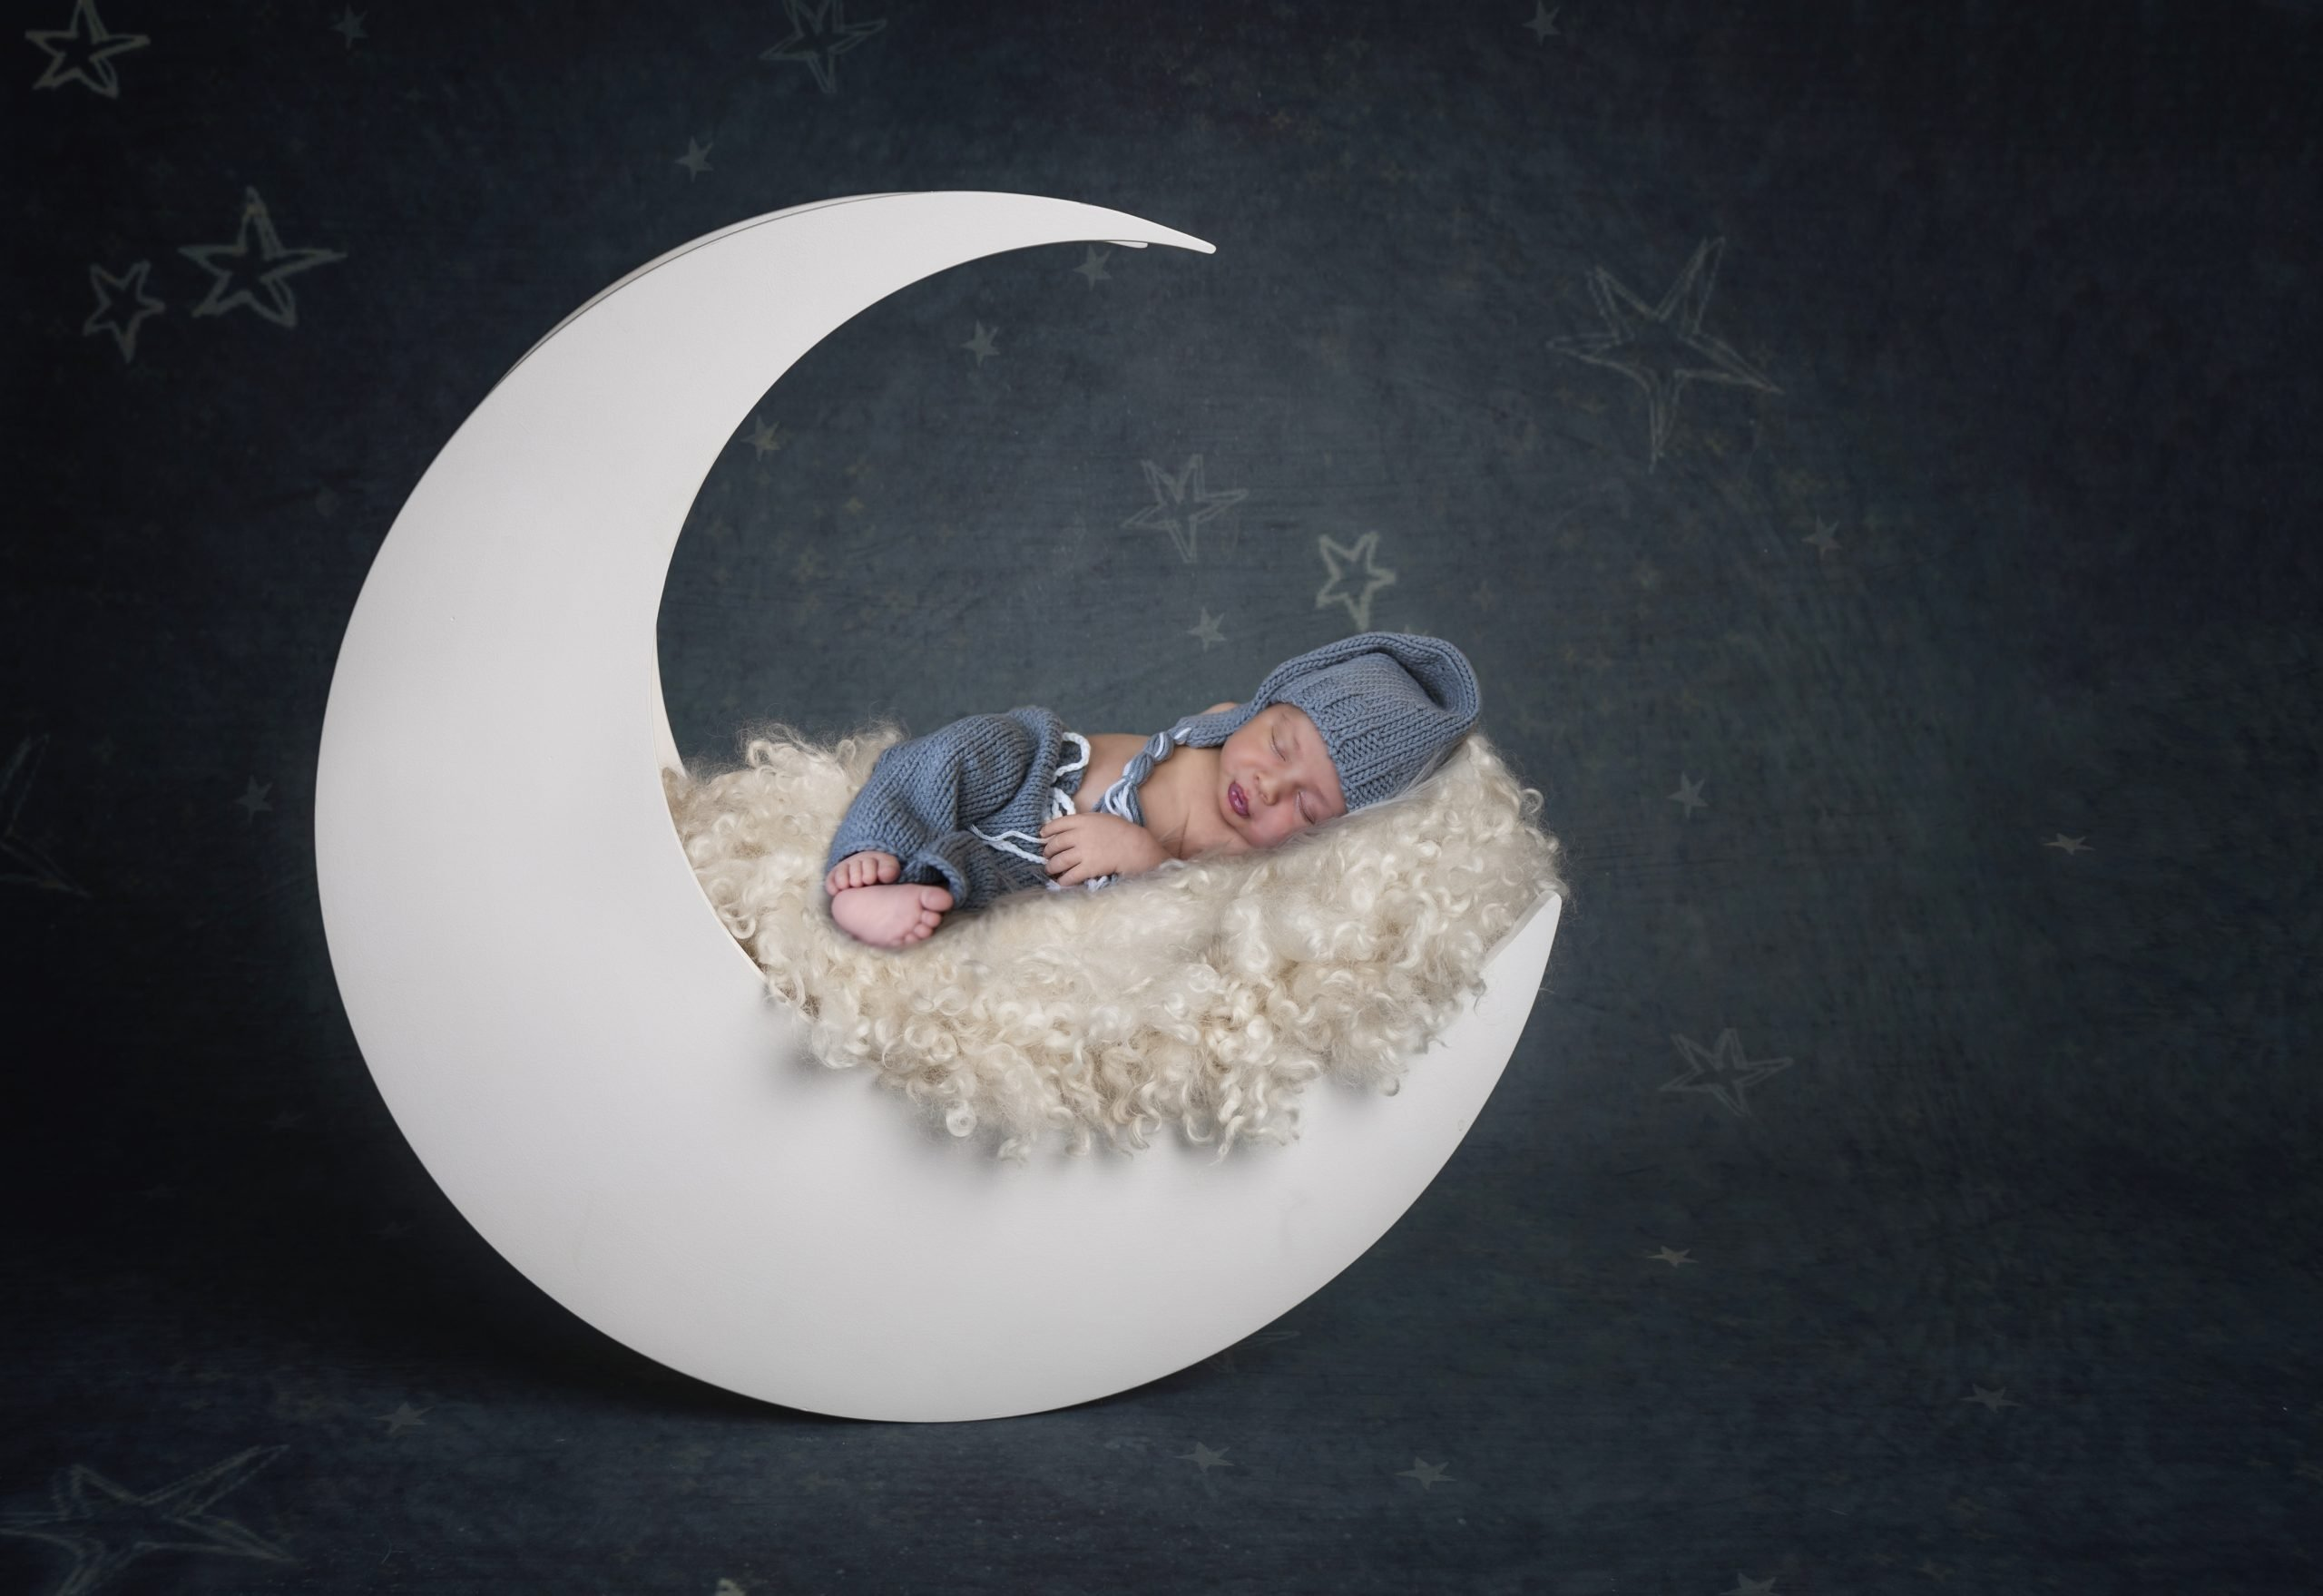 Cute baby sleeping on a moon